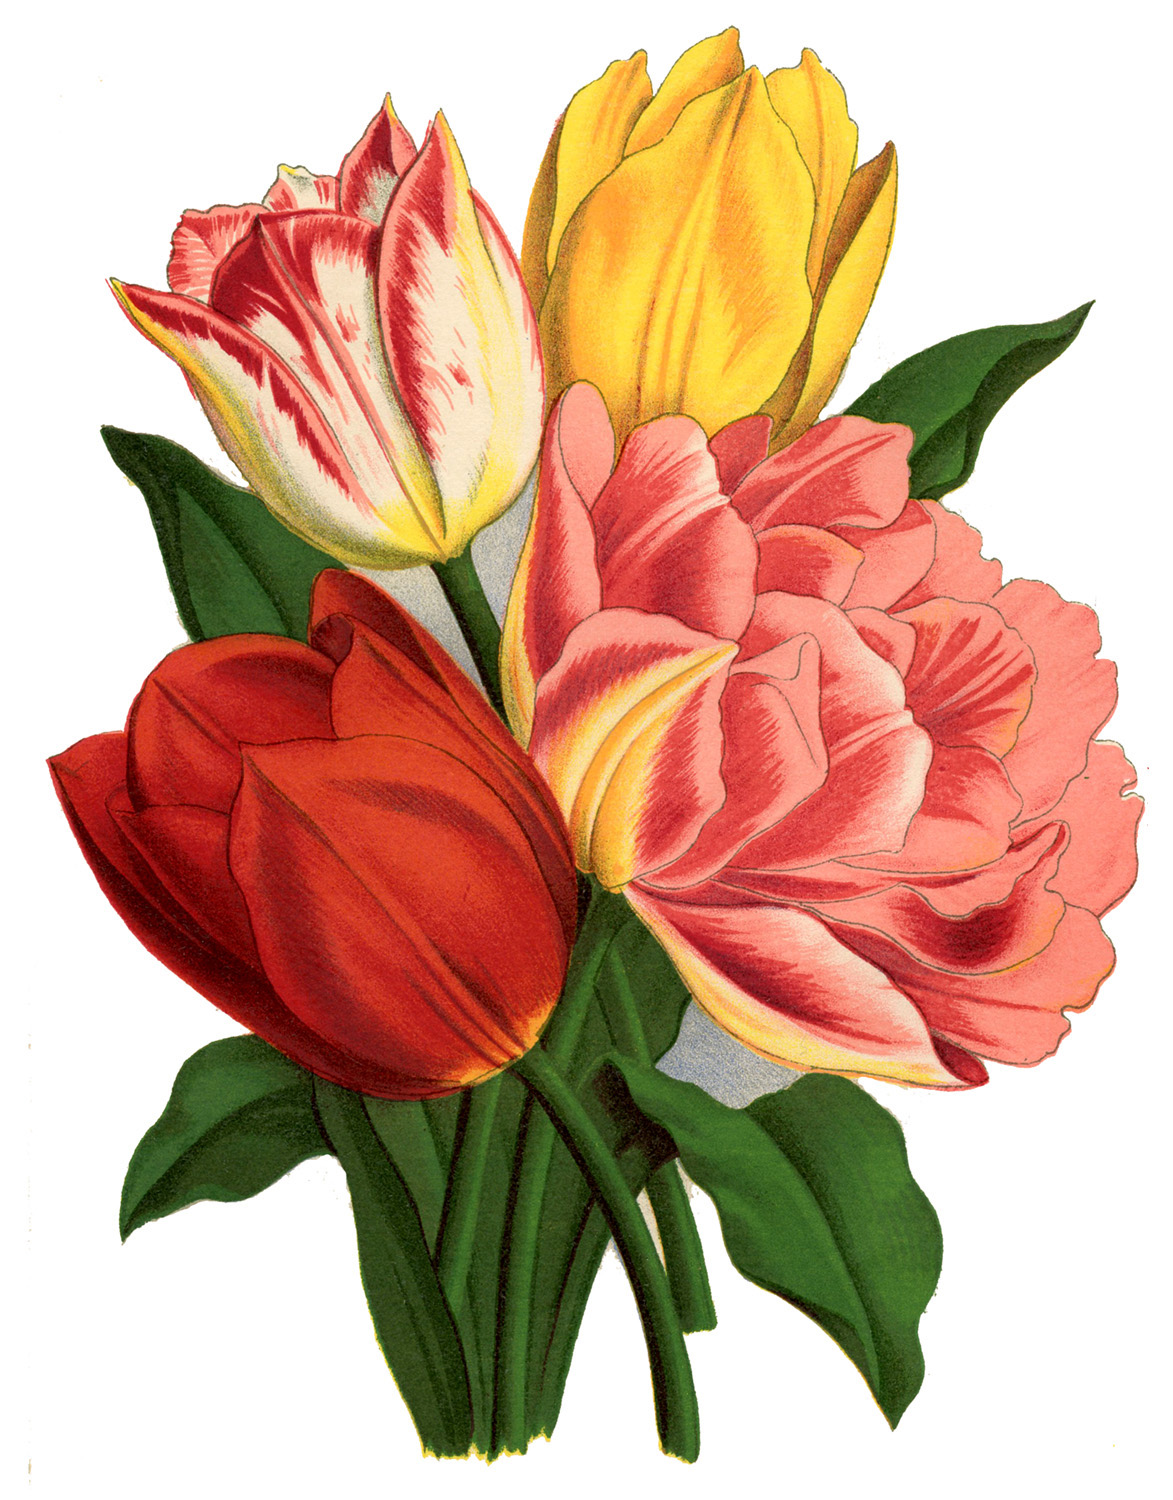 12+ Spring Tulips Images - The Graphics Fairy